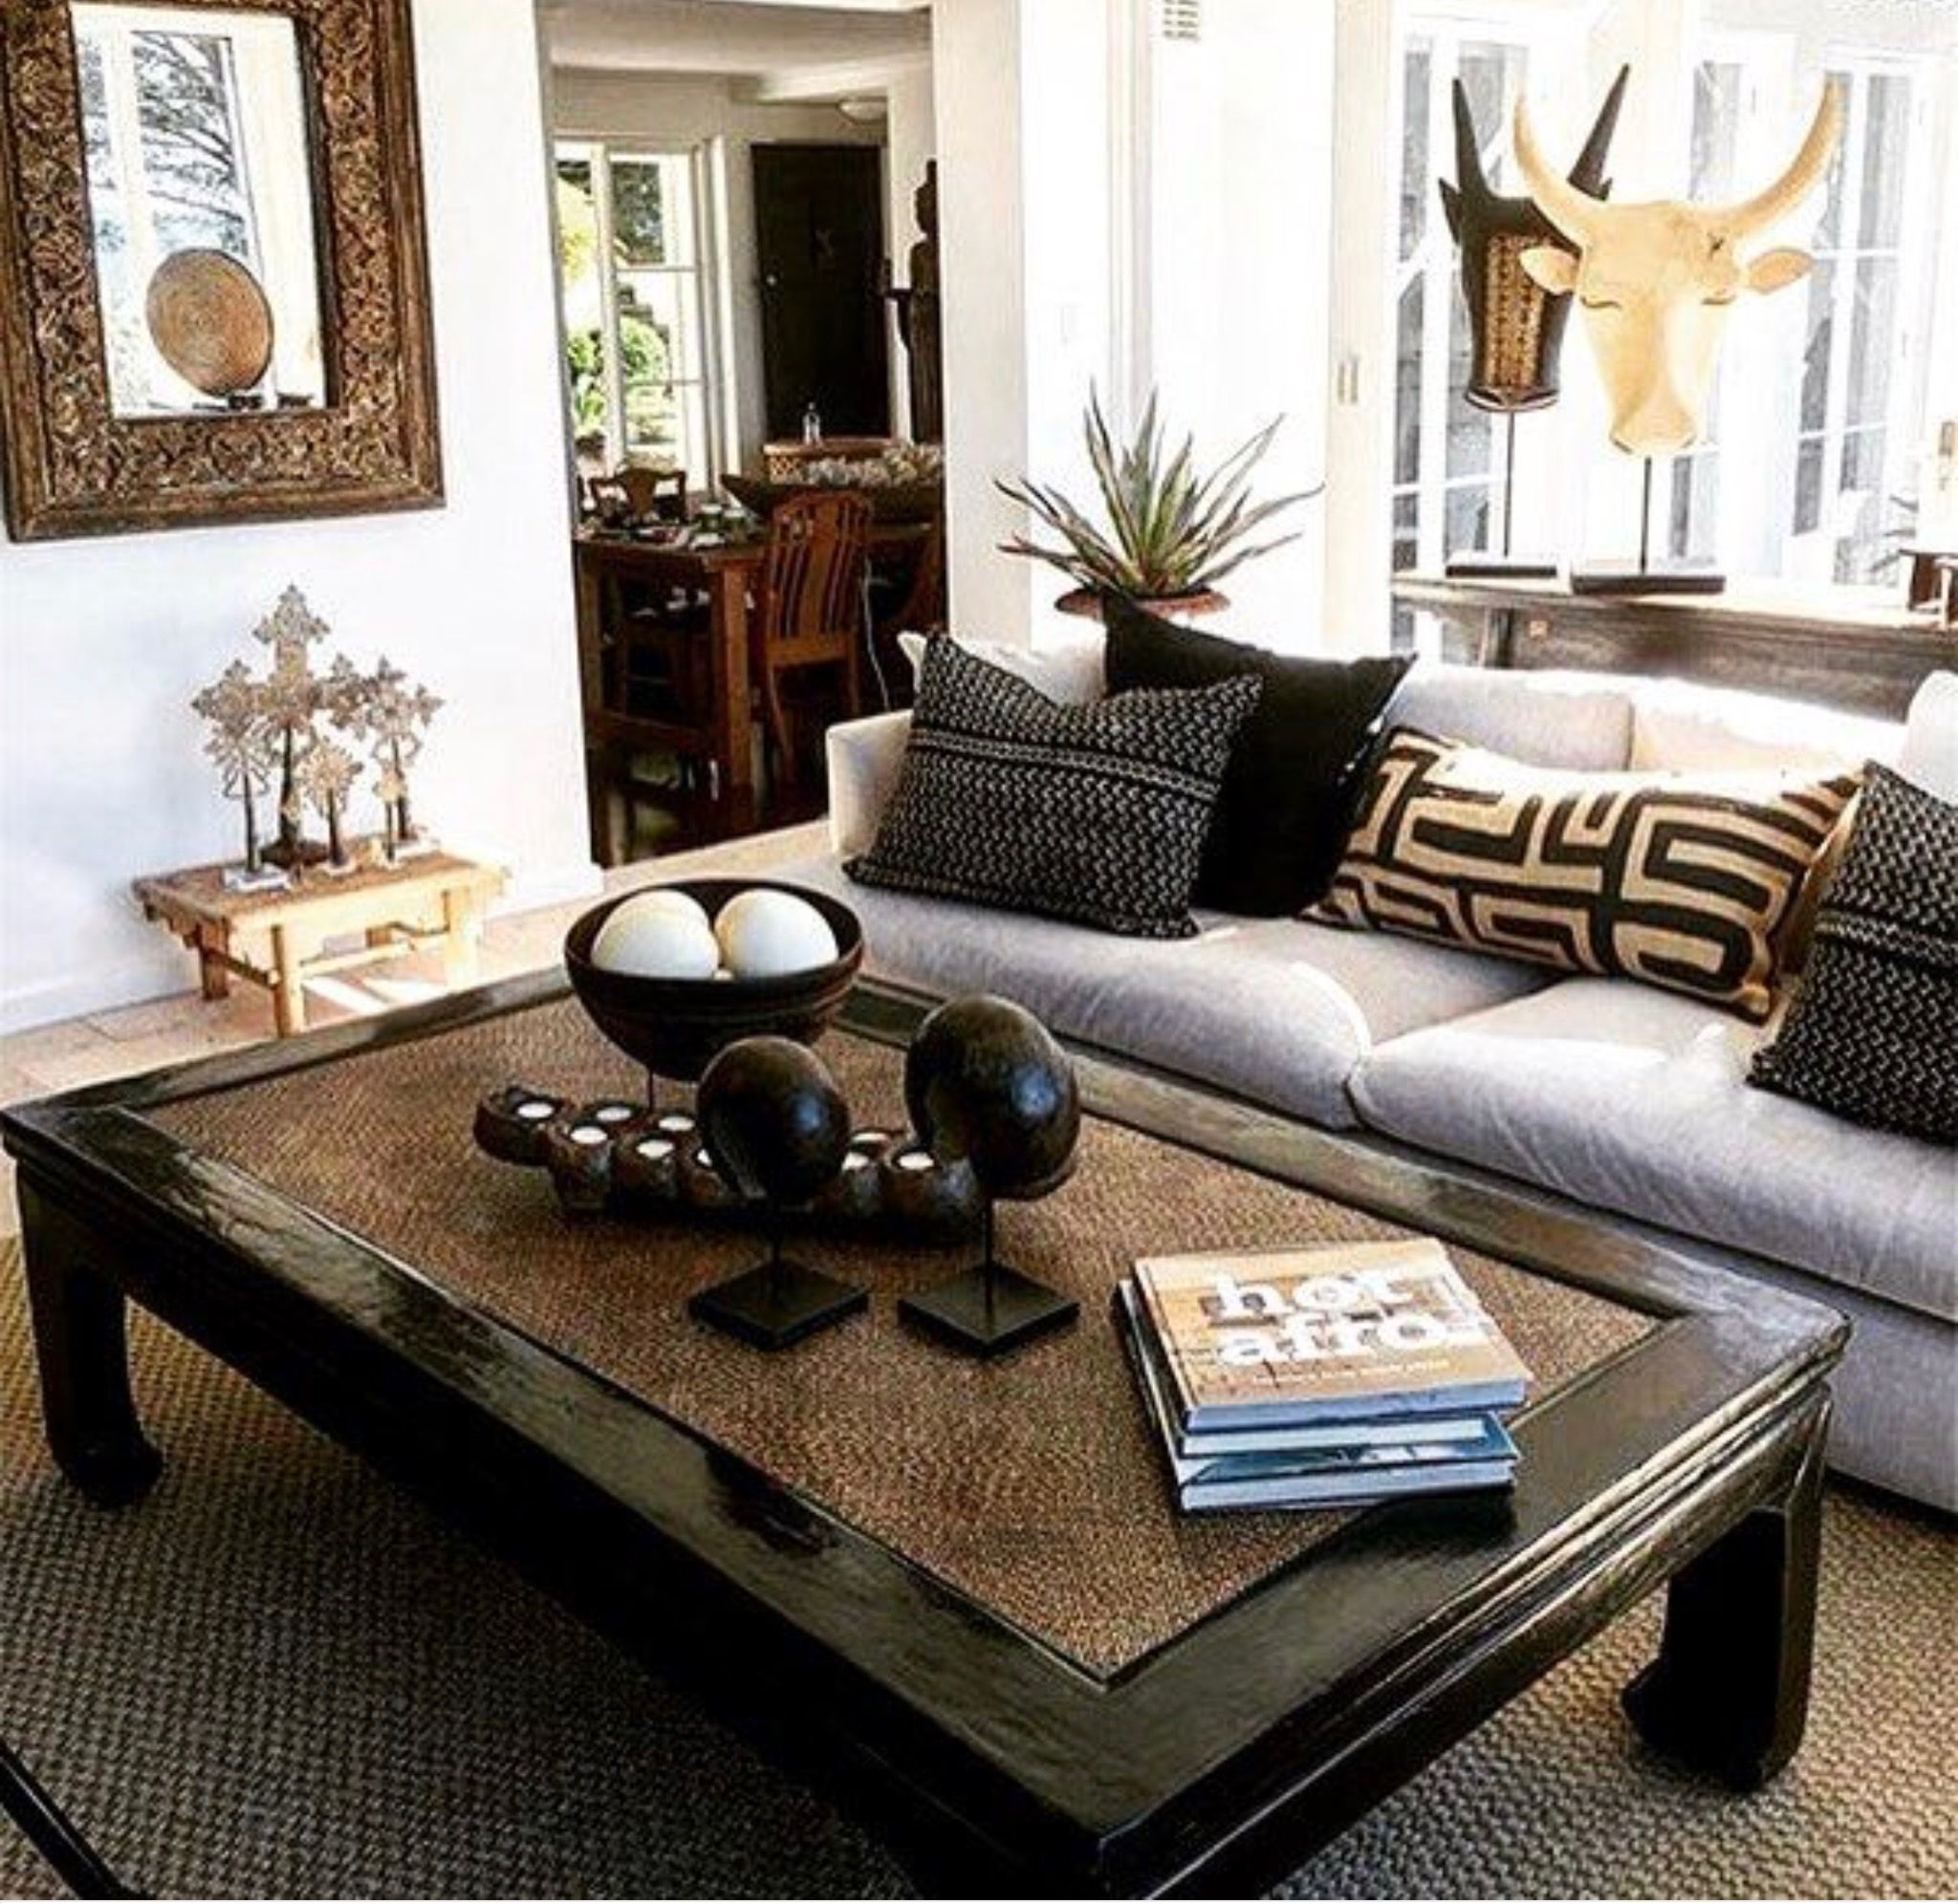 African Style Home  African decor living room, African home decor